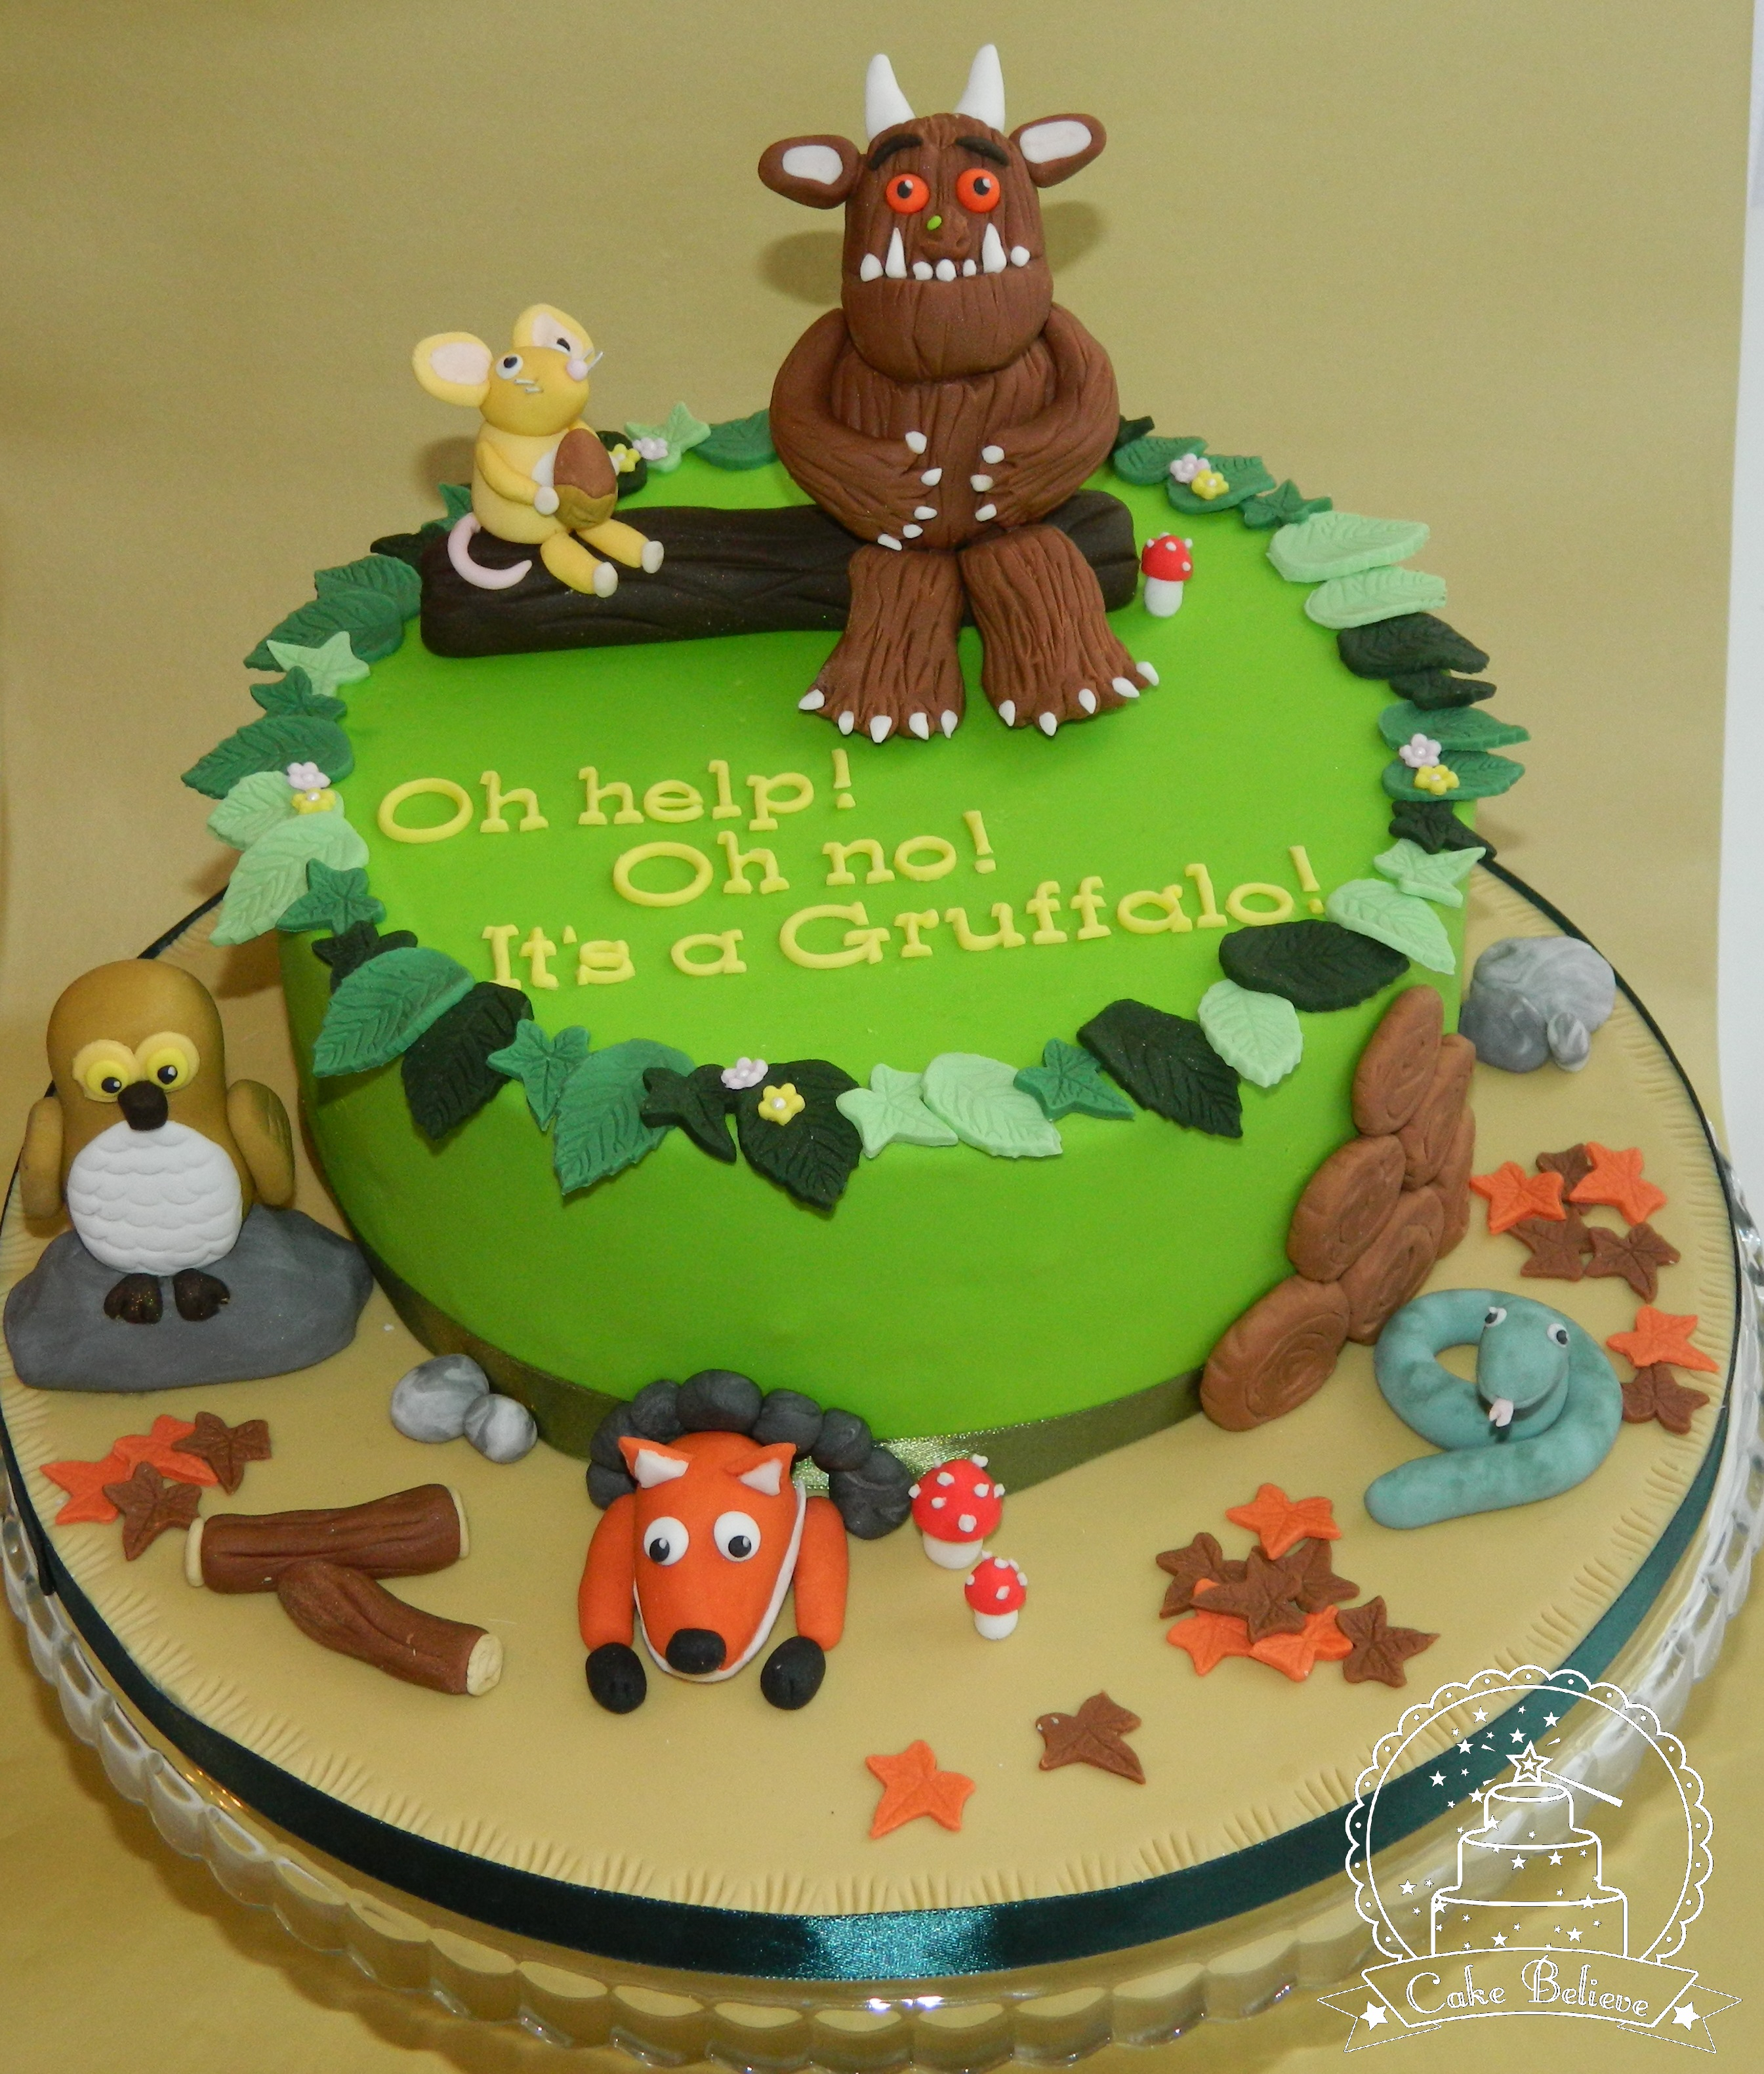 Gruffalo to use